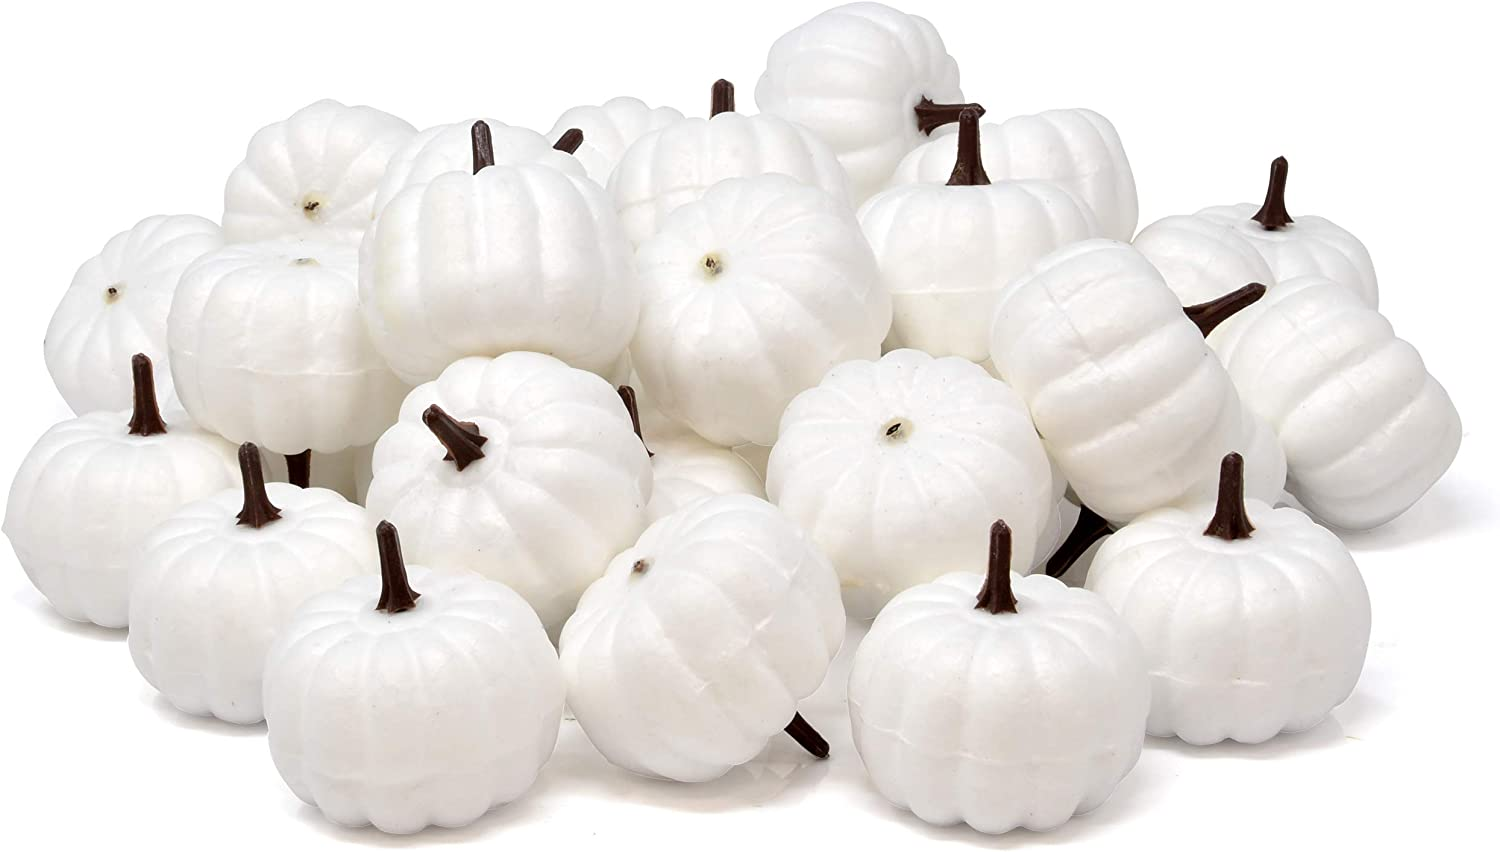 Gift Boutique 36 White Mini Pumpkins Artificial Realistic Halloween Harvest Small Pumpkin for Fall Autumn Thanksgiving Party Crafts Home Decor Indoor Outdoor Holiday Tabletop Centerpiece Decorations